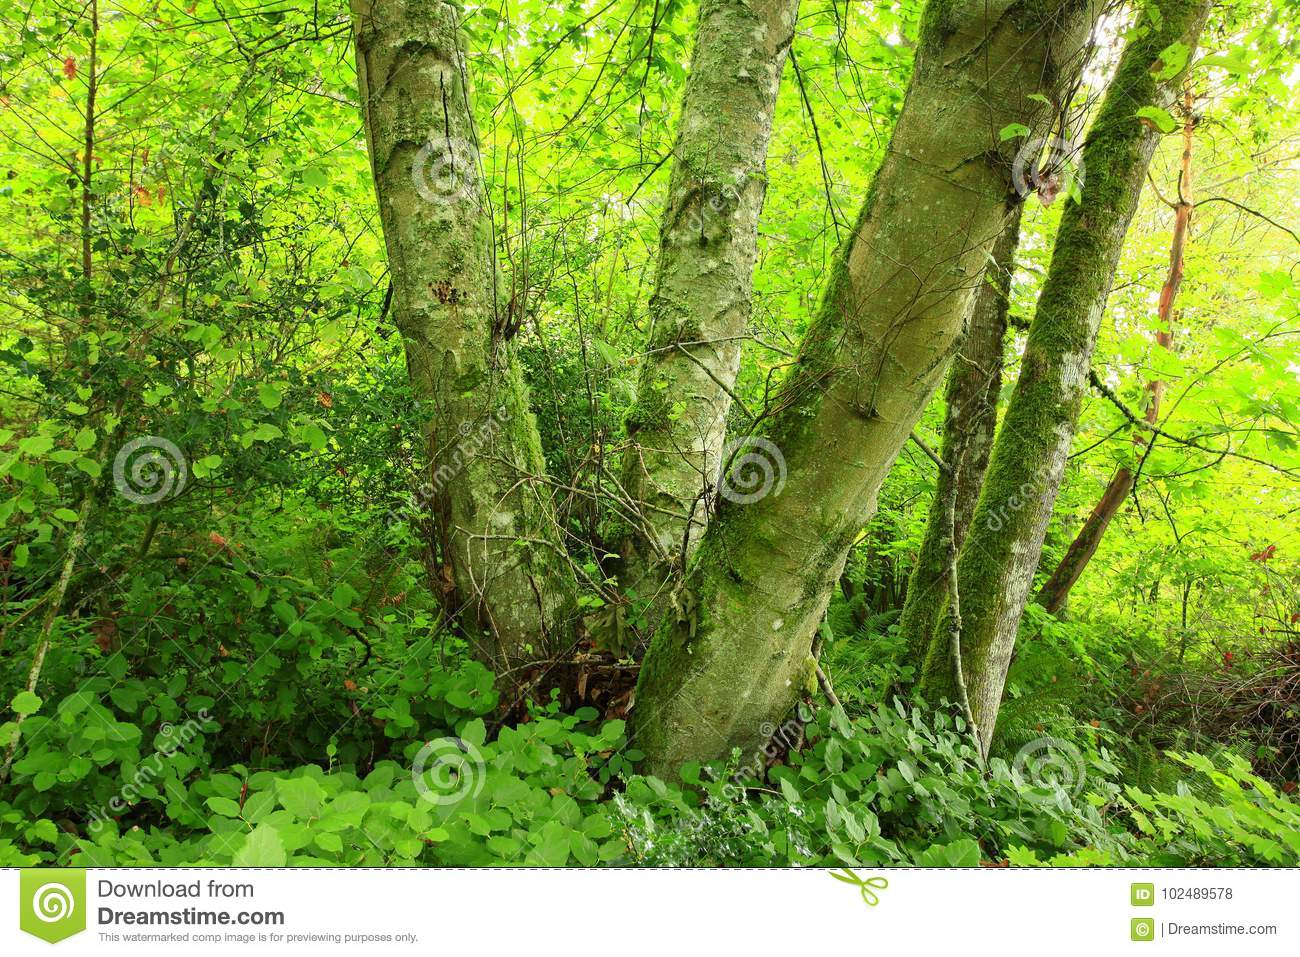 Pacific Northwest forest and Red alder tree